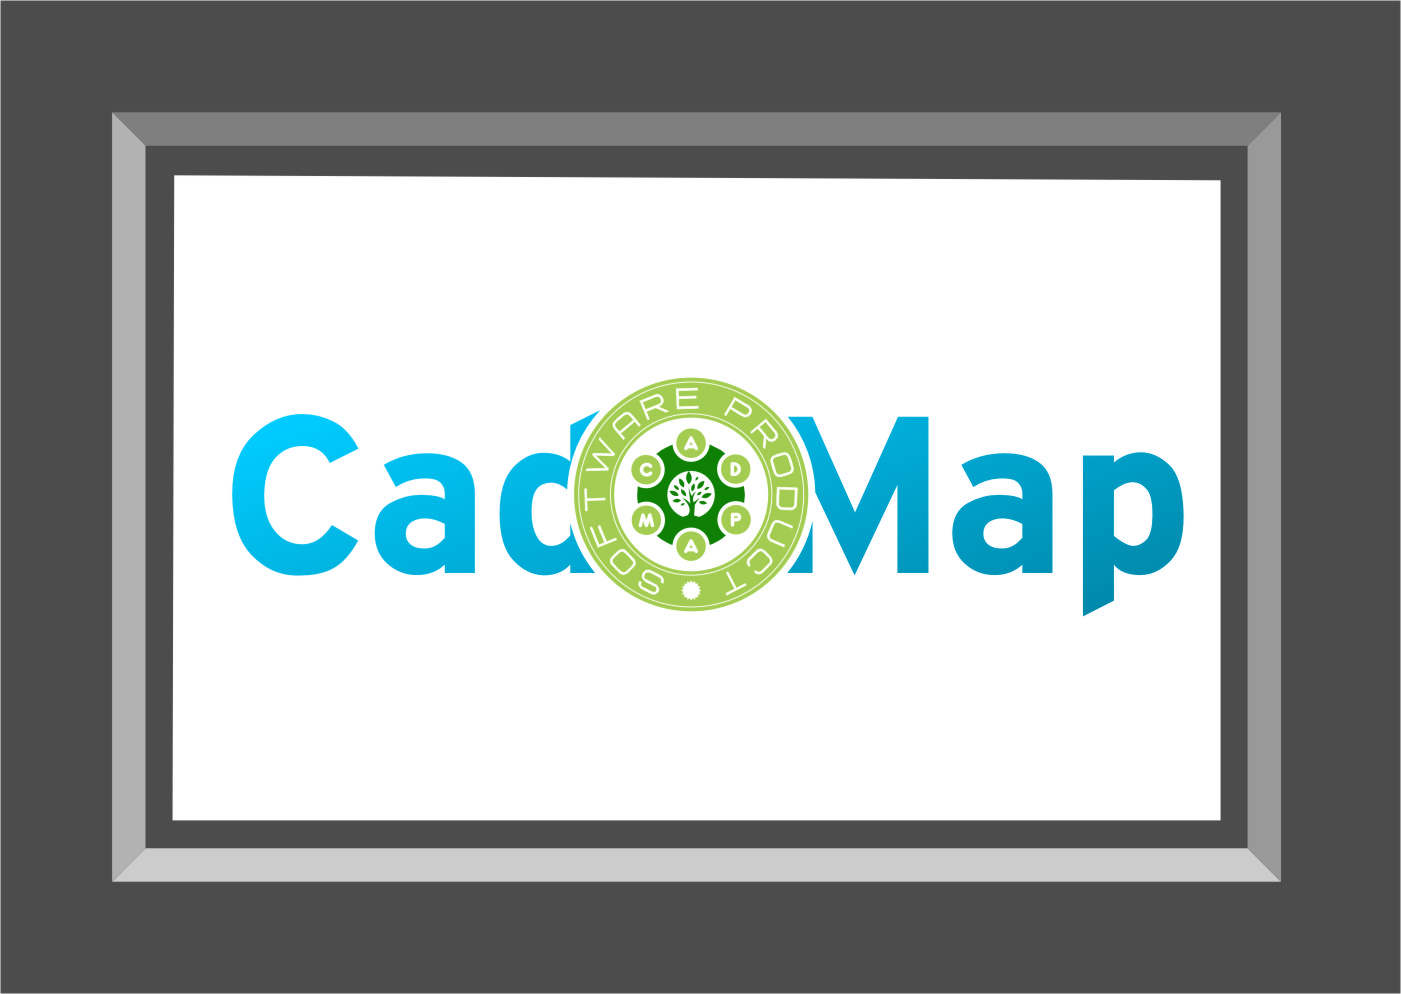 Logo Design by Ngepet_art - Entry No. 152 in the Logo Design Contest Captivating Logo Design for CadOMap software product.